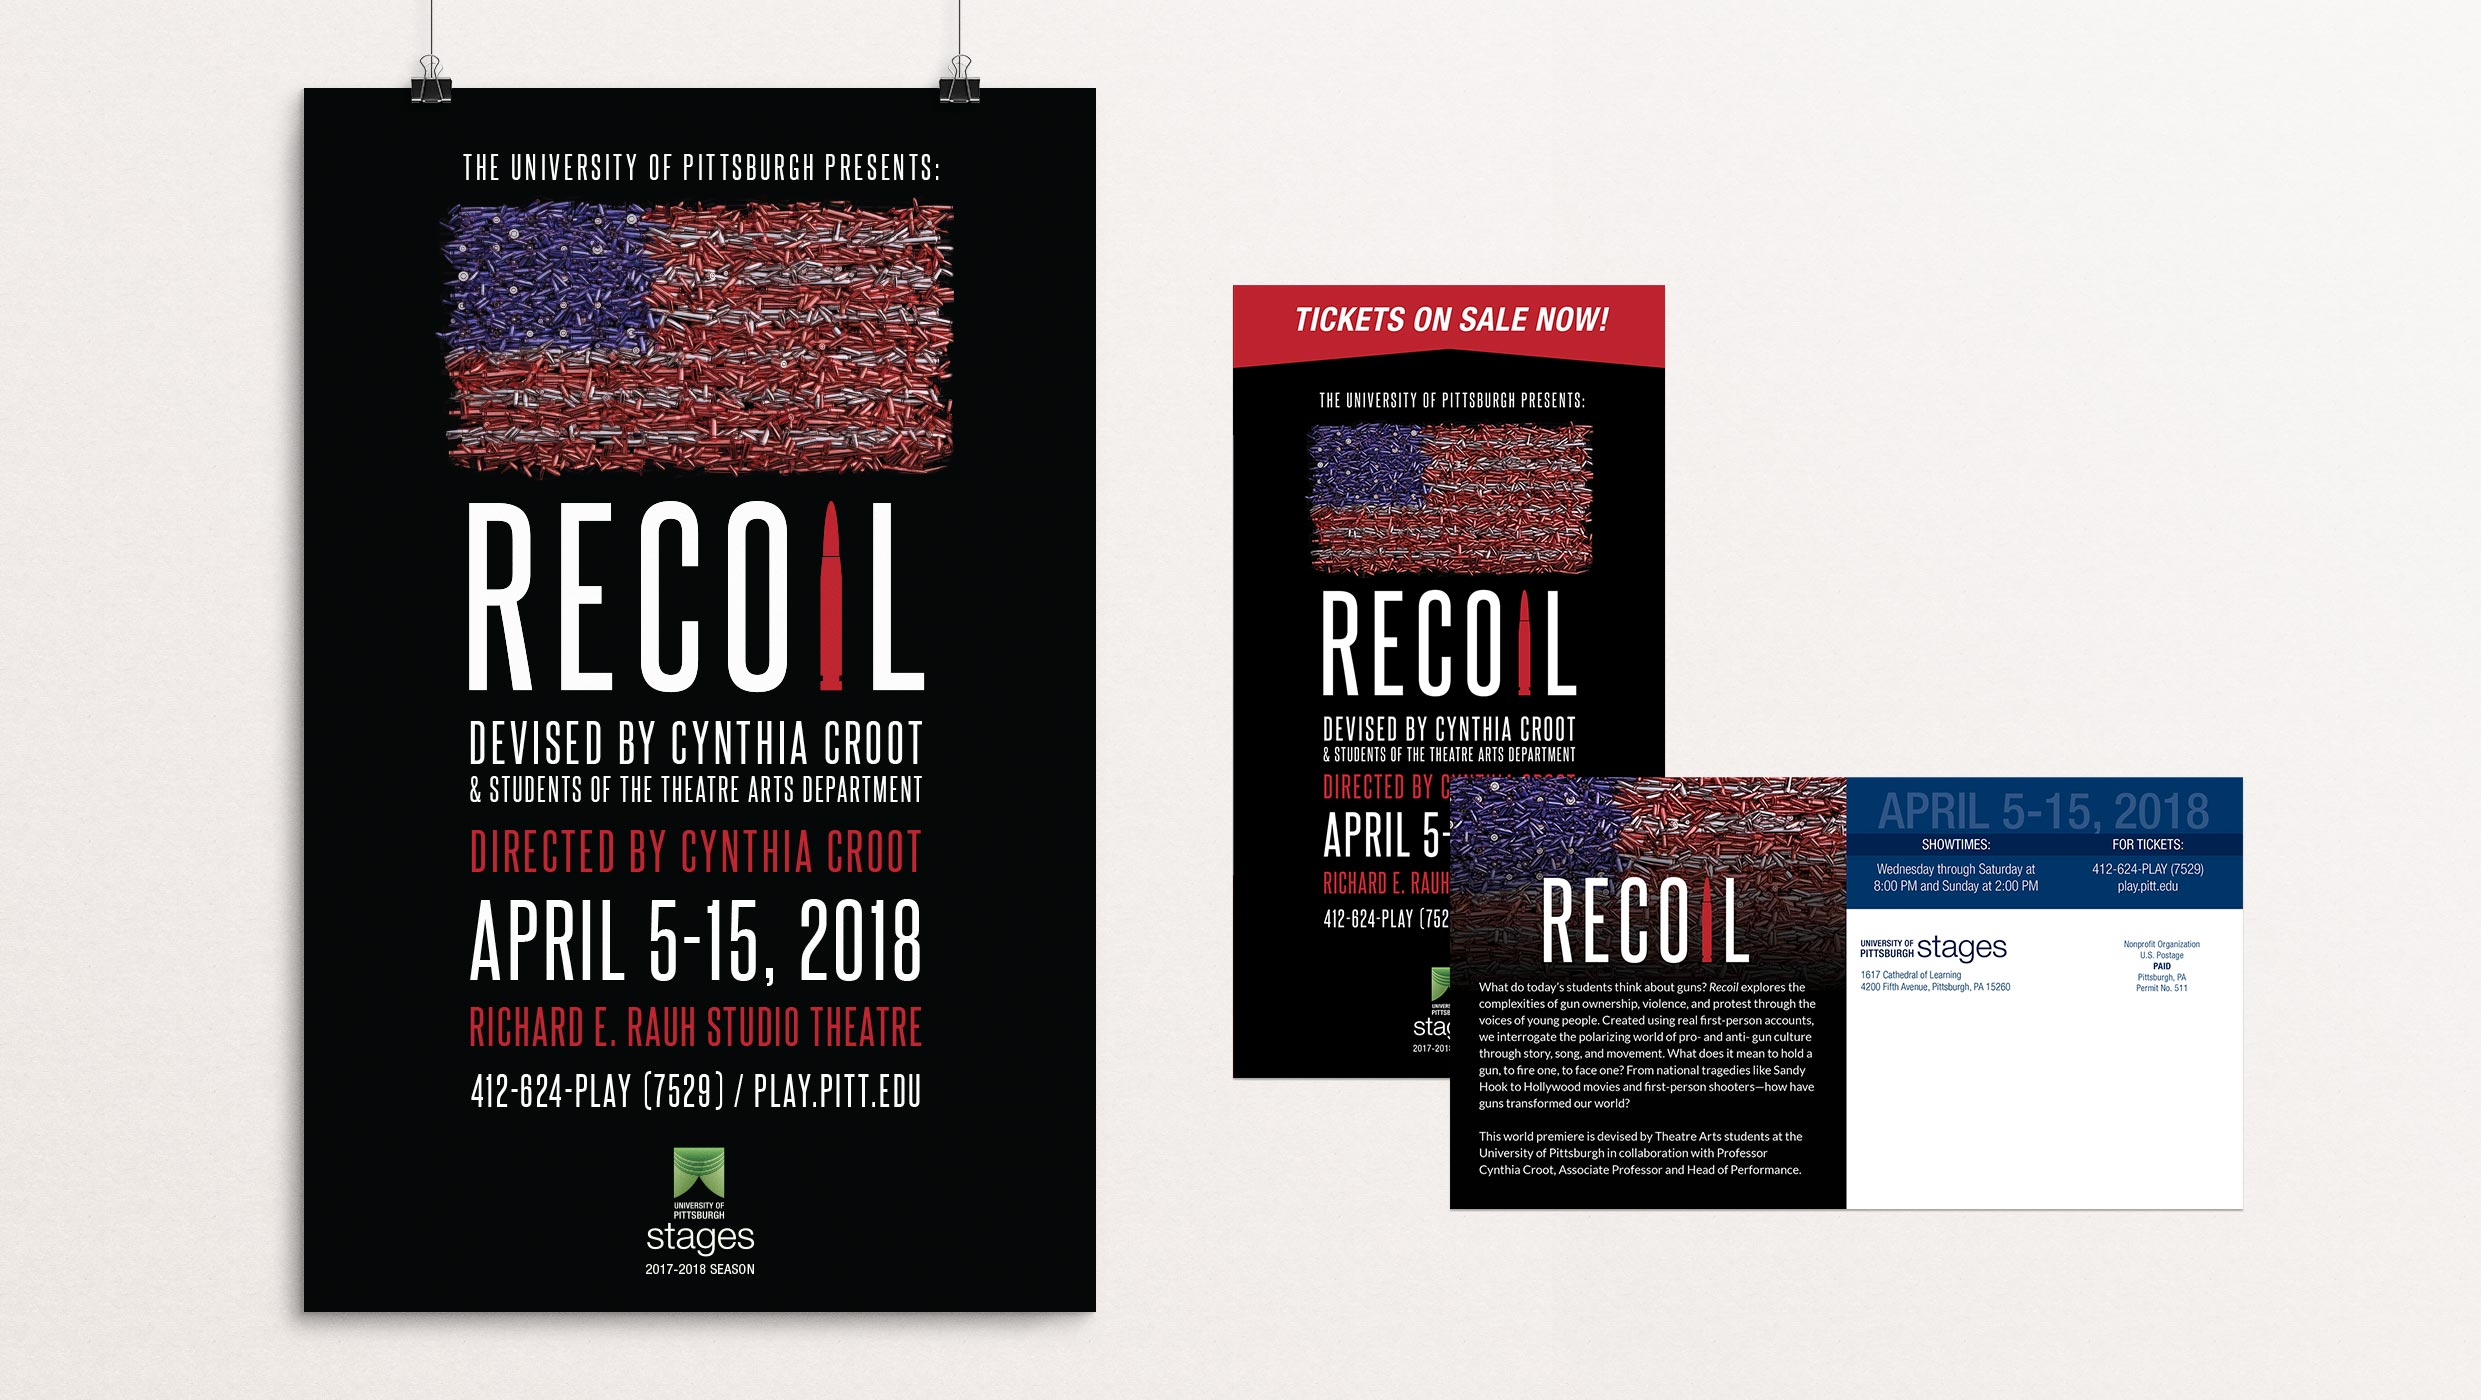 Recoil poster designed by Tara Hoover